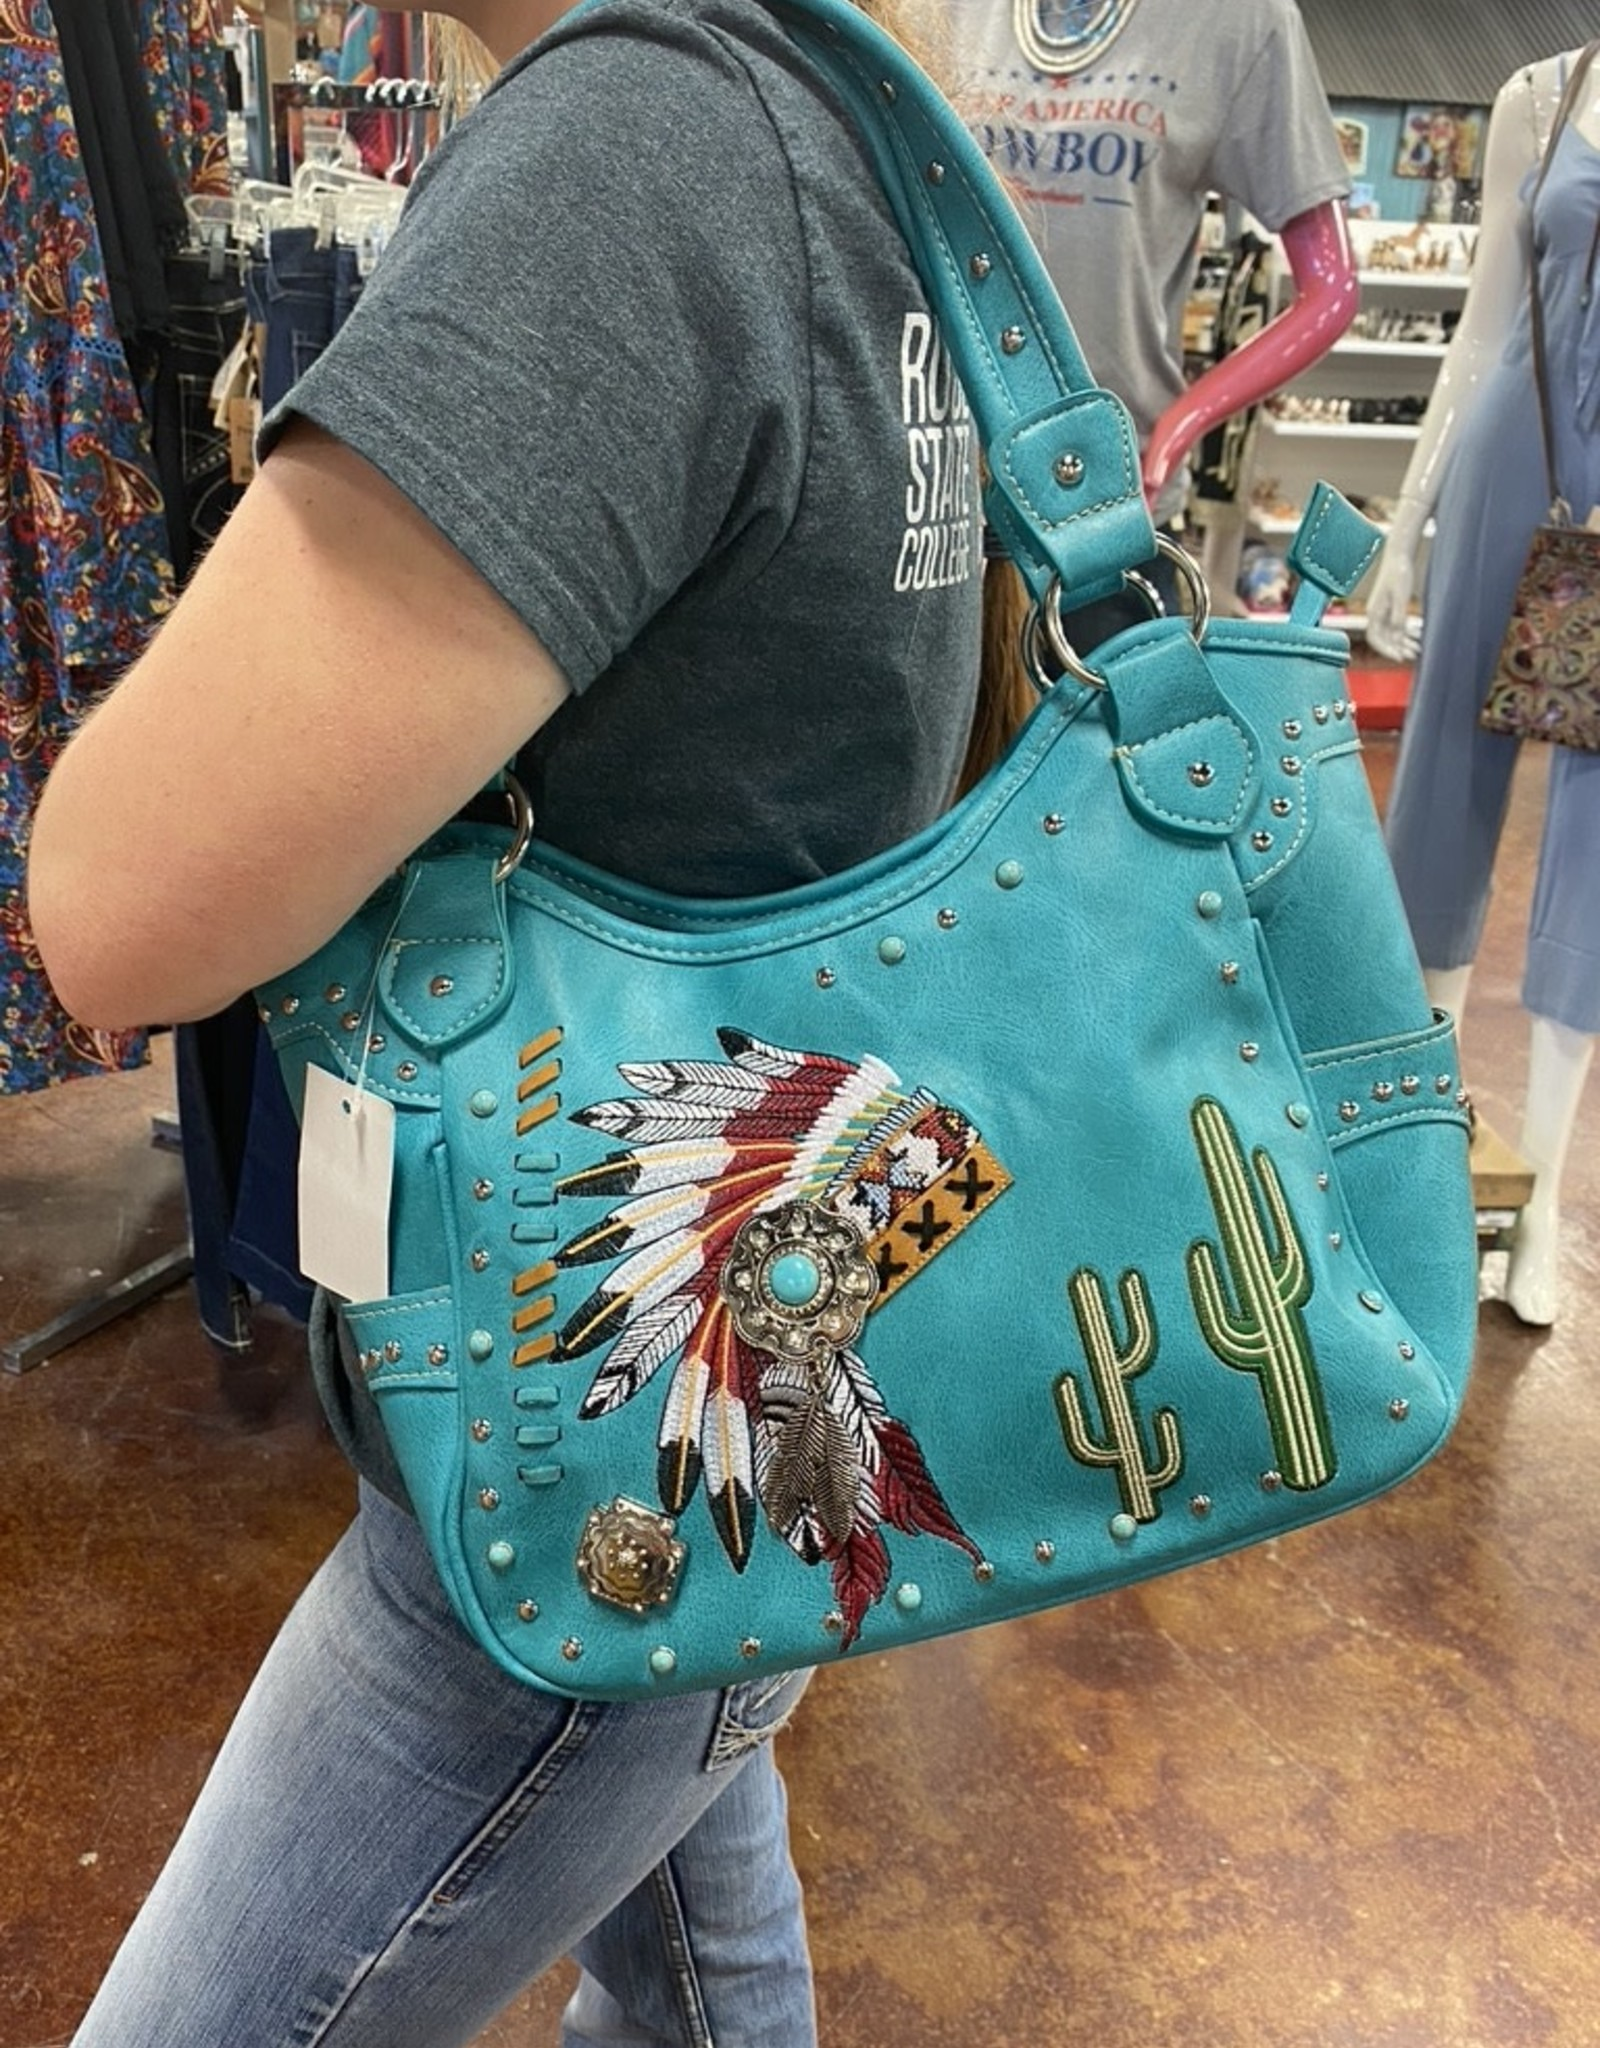 HEADDRESS PURSE LARGE TURQ CONCEAL CARRY